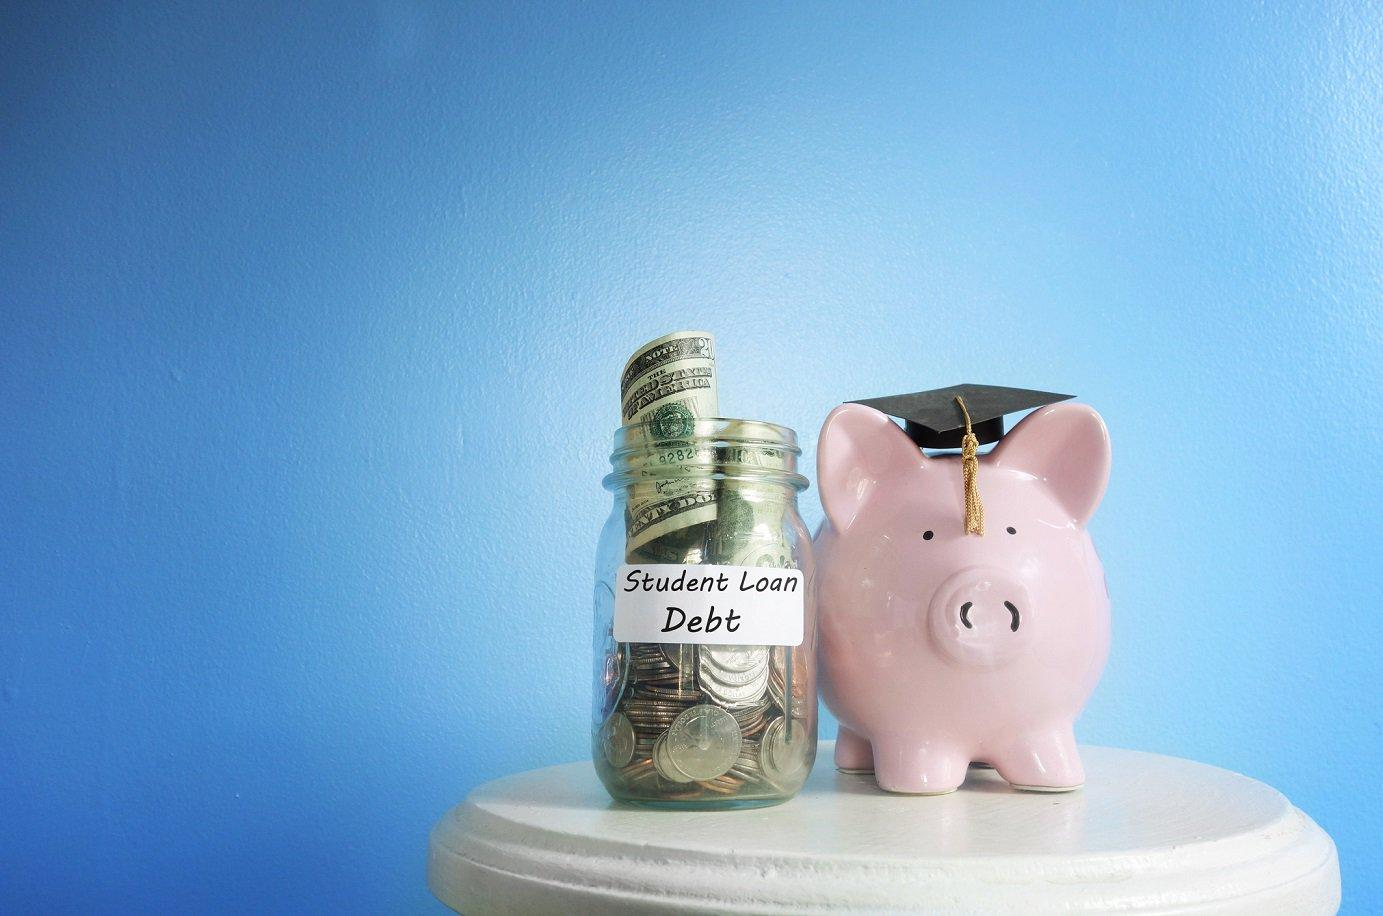 Should You Pay Student Loans With a Credit Card?